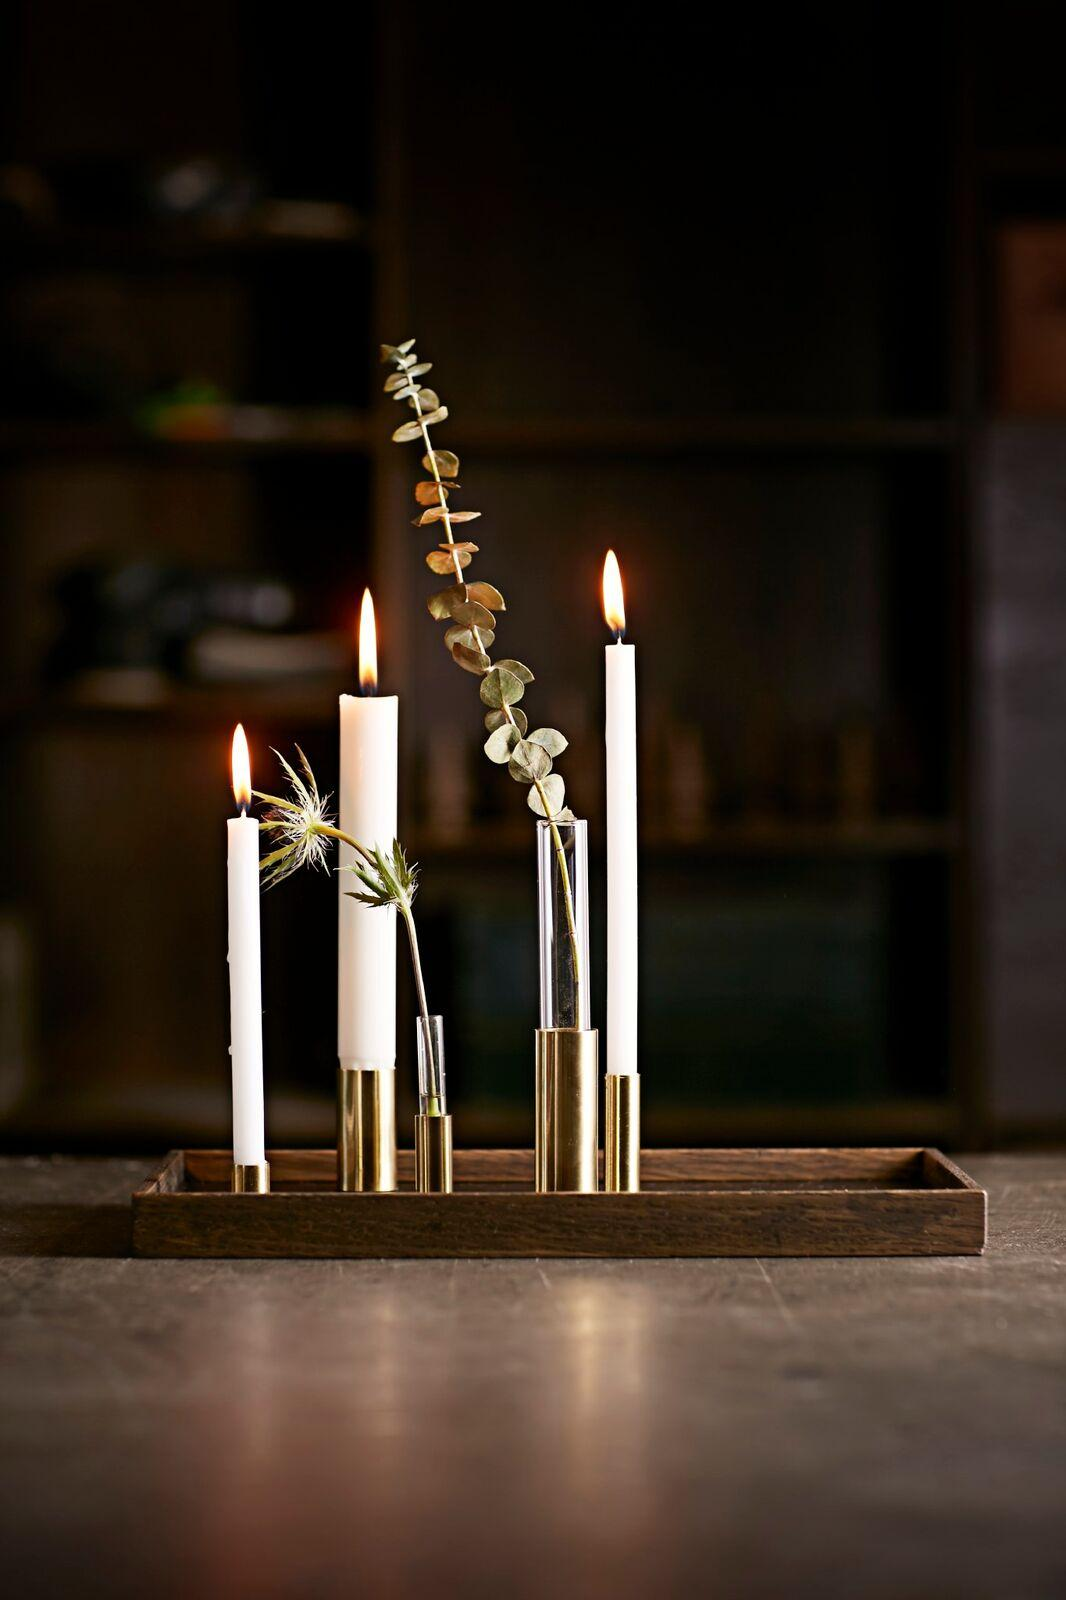 Modernes Kerzenhalter-Tablett CANDLE TRAY DE LUXE von The Oak Men #tablett #kerzenständer ©The Oak Men